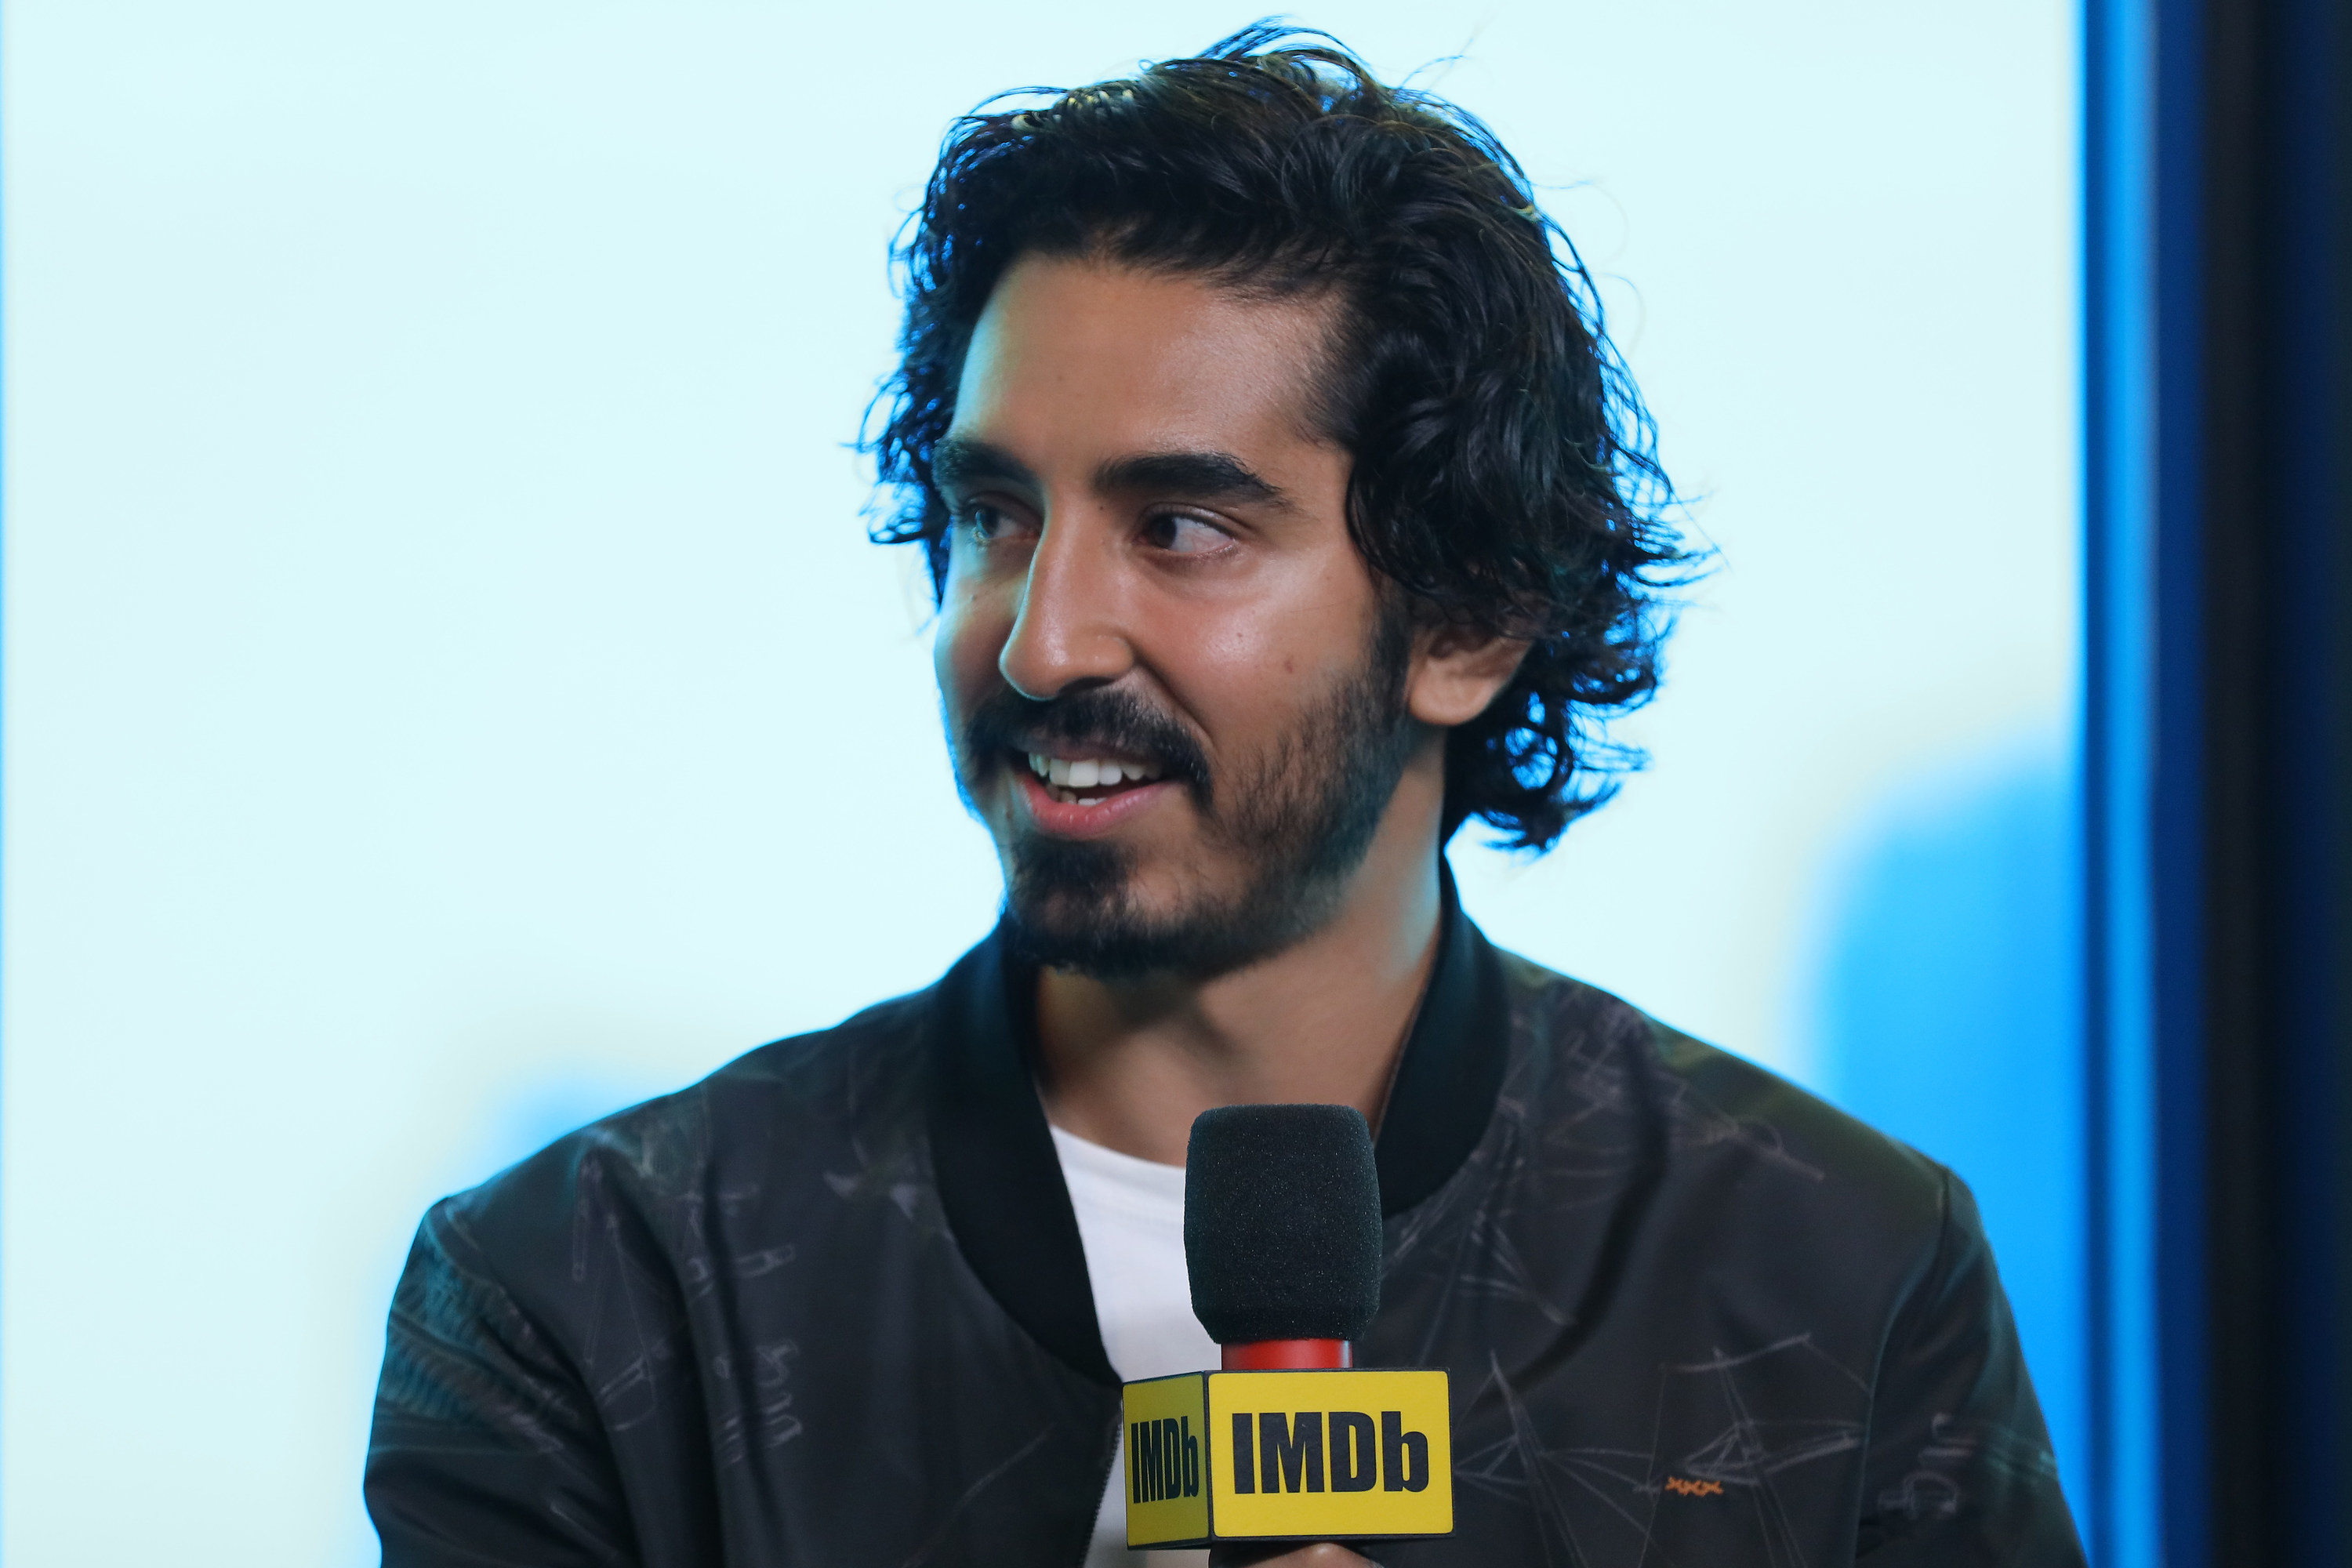 Dev Patel speaks at an event in 2019